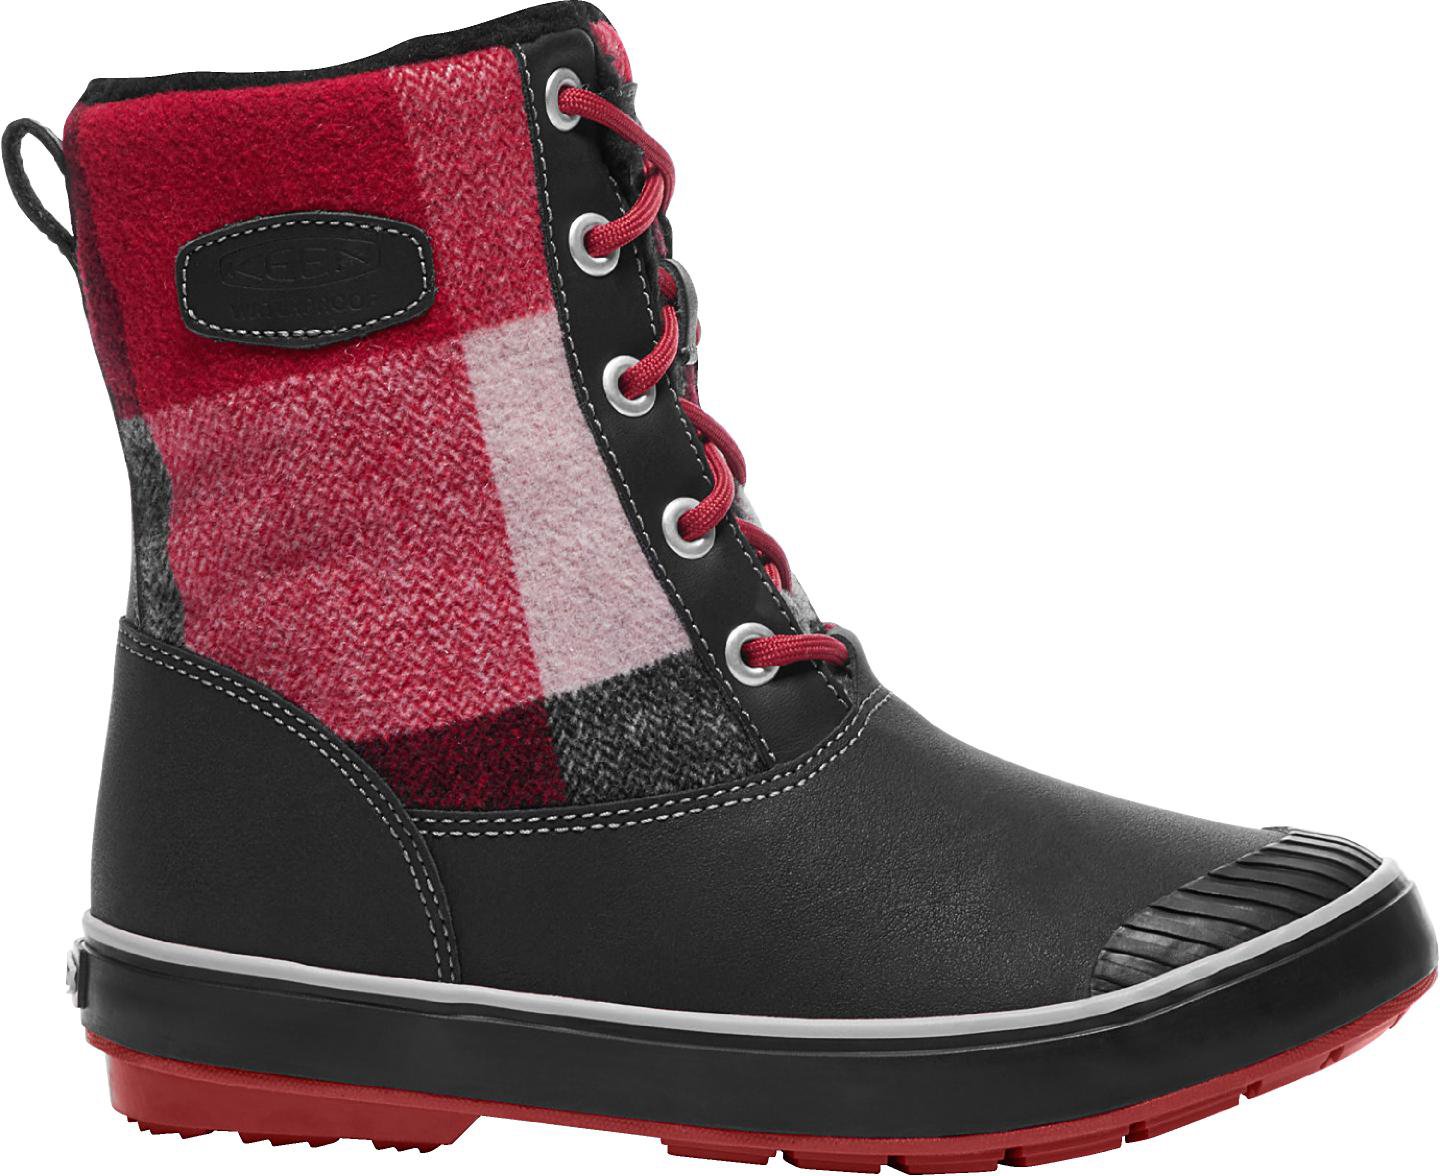 90e16fbf65b Keen Elsa Waterproof Winter Boots - Women's